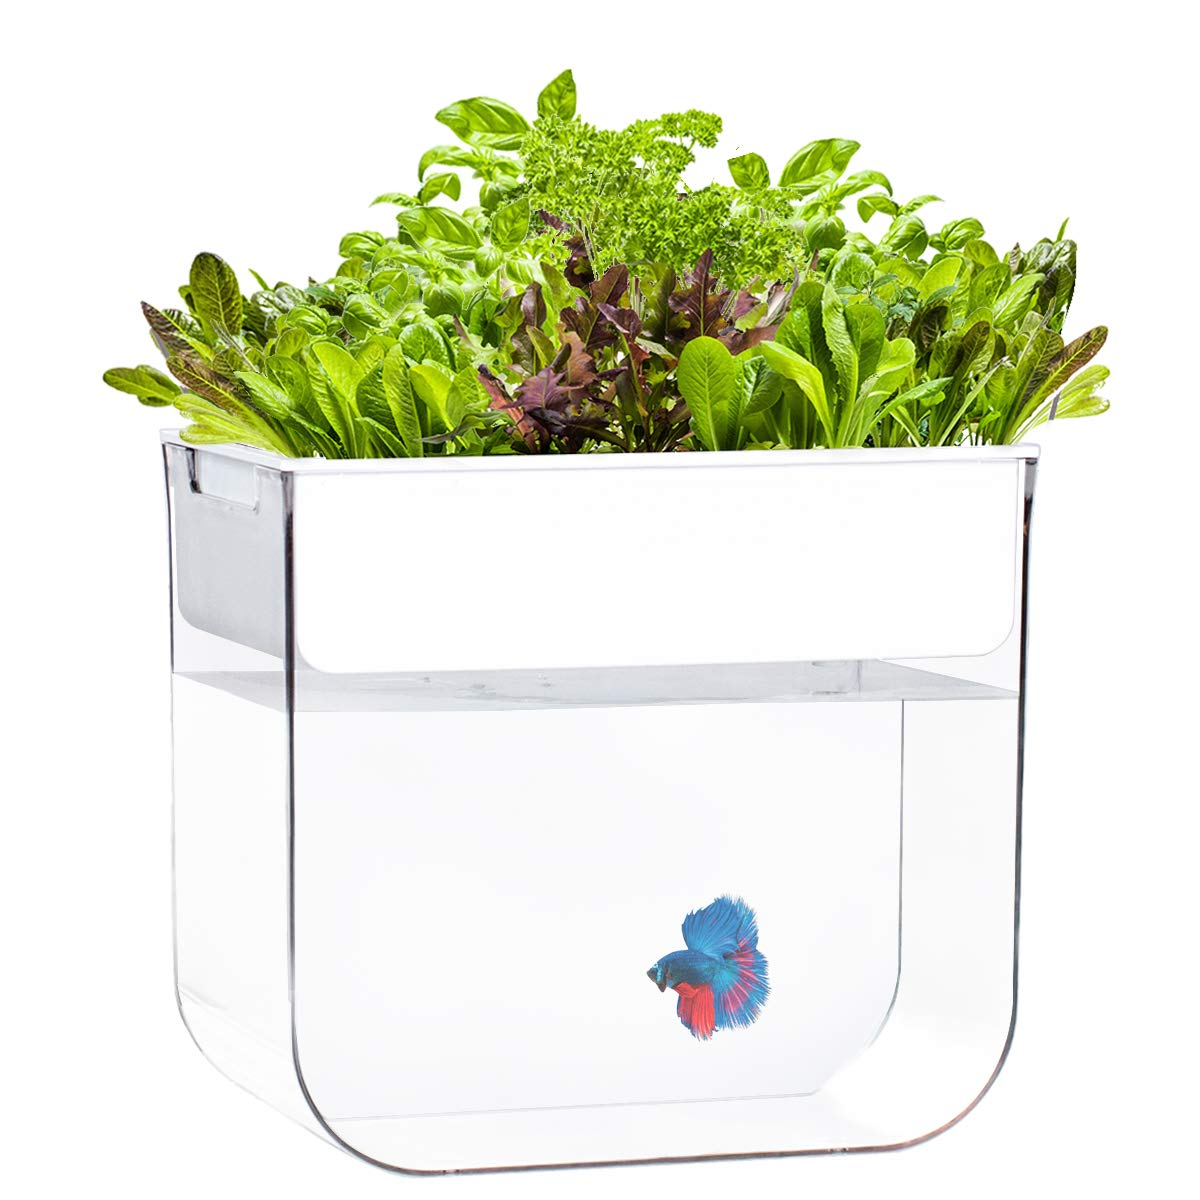 Joyfay Aquaponic Fish Tank- Fish Tank, 3.2 Gallon, Hydroponic Cleaning Tank, Fish Feeds The Plants and The Plants Clean…